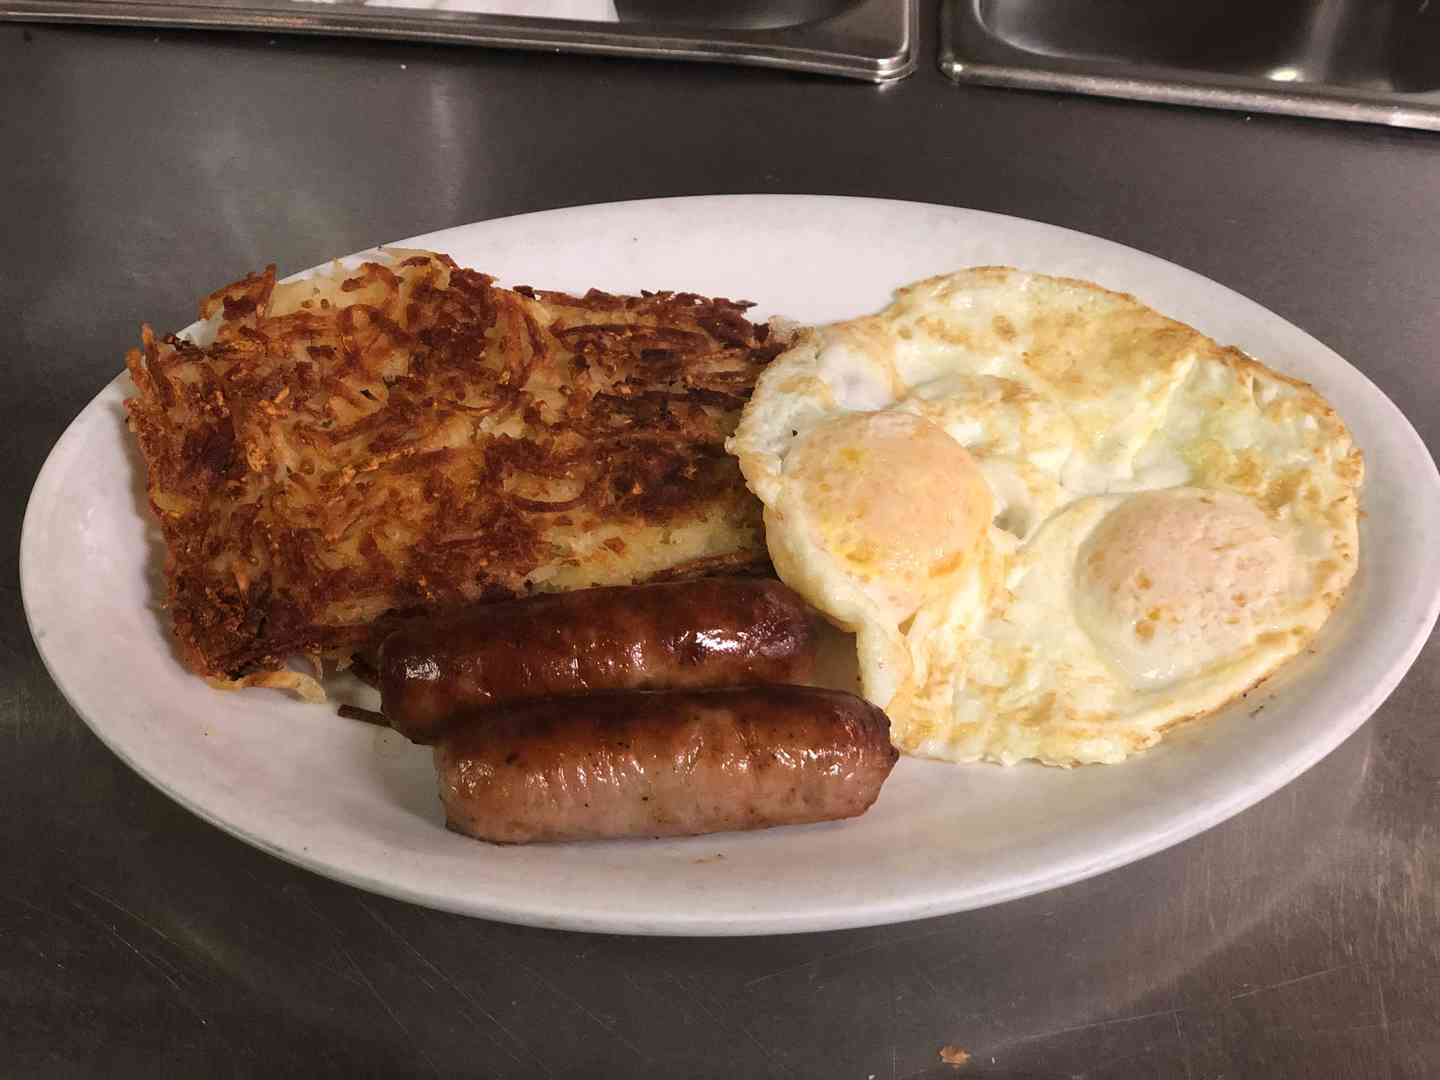 Bacon or sausage and eggs